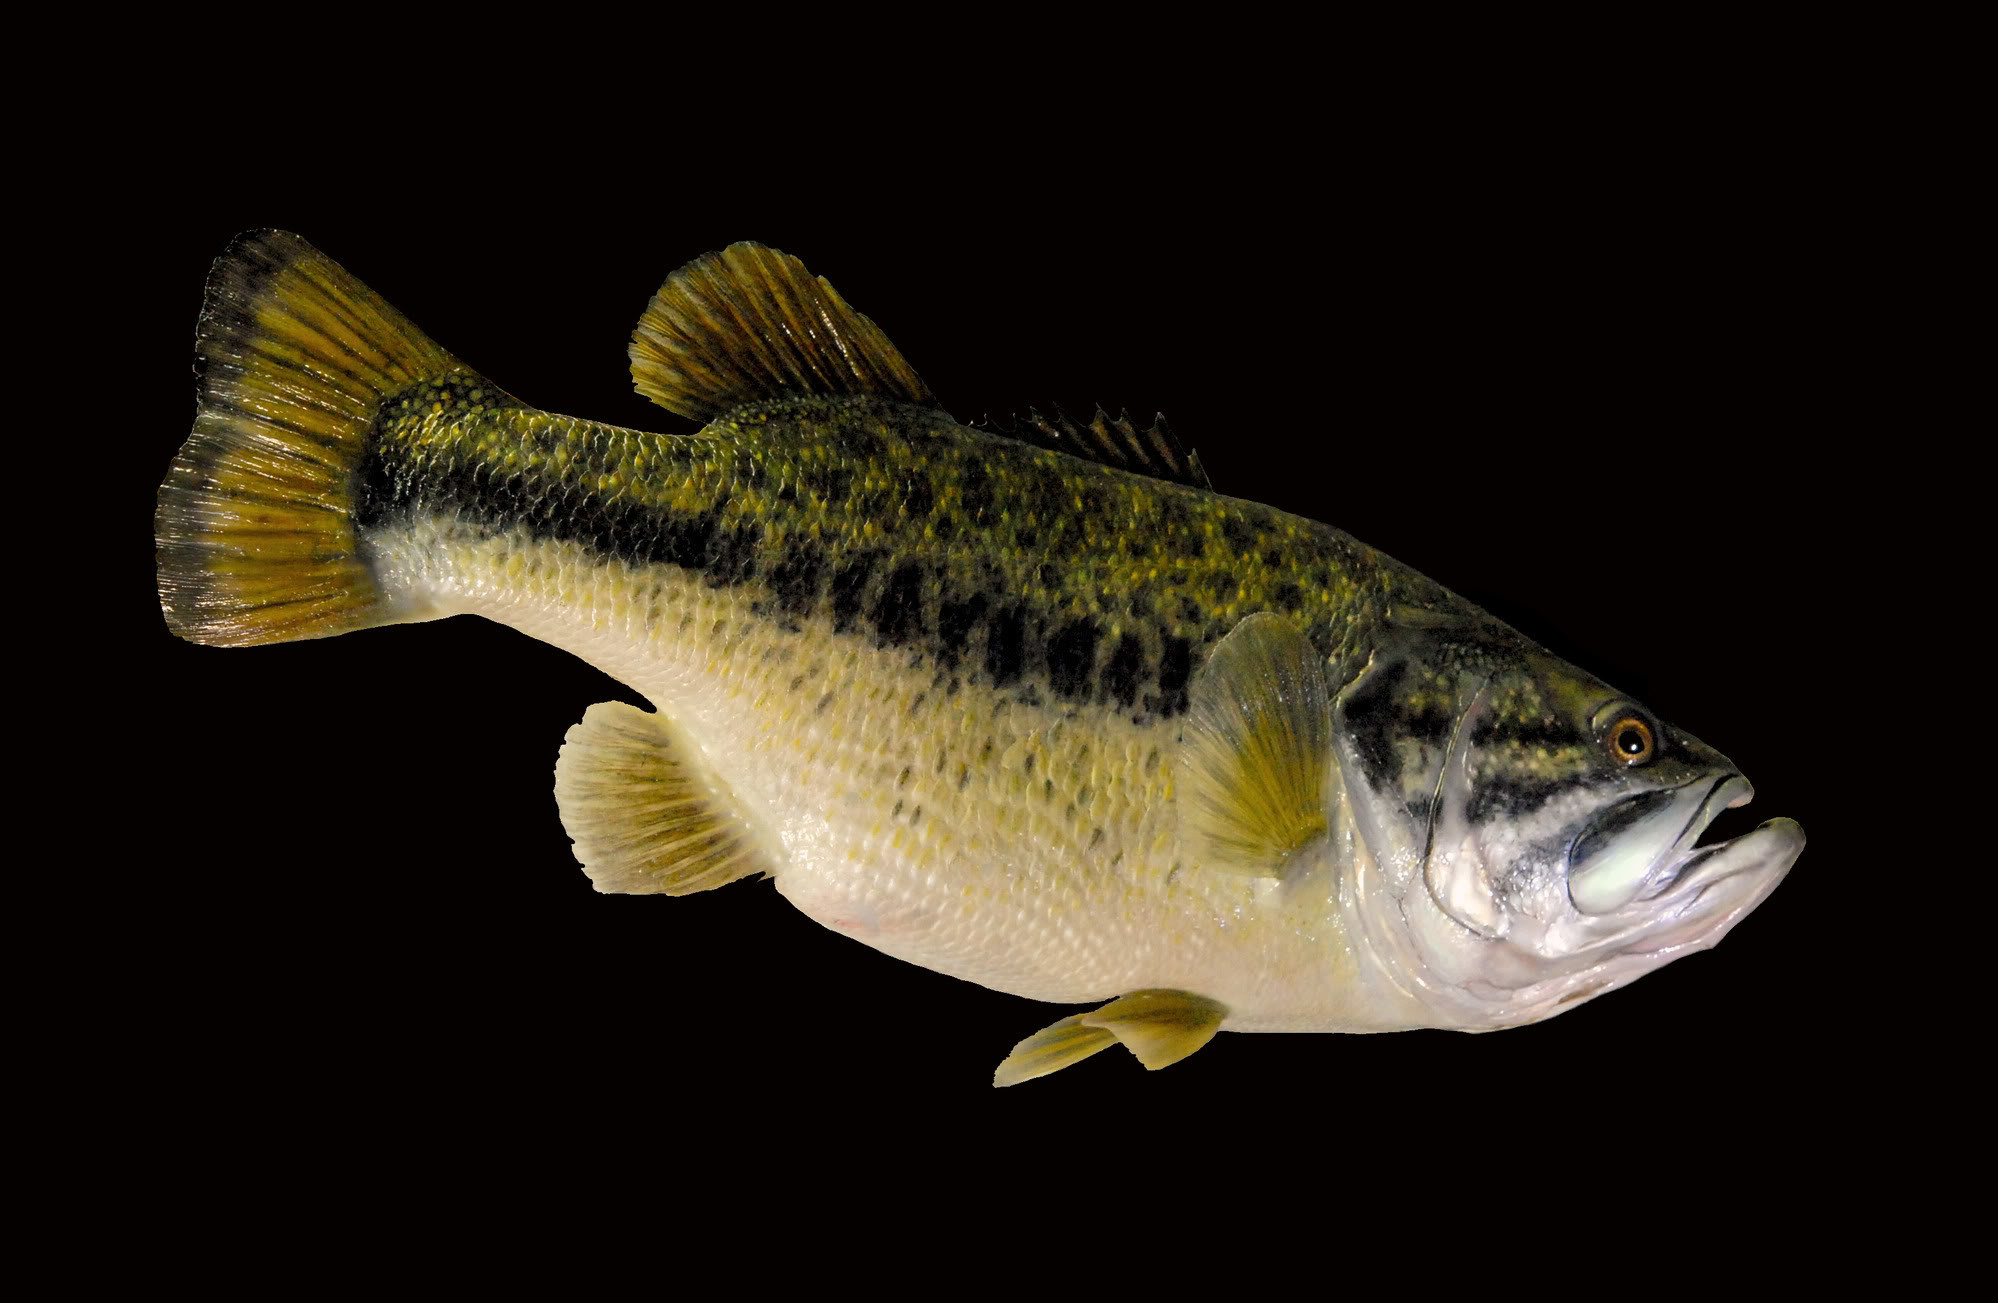 Largemouth Bass Taxidermy Mounts Image source from this